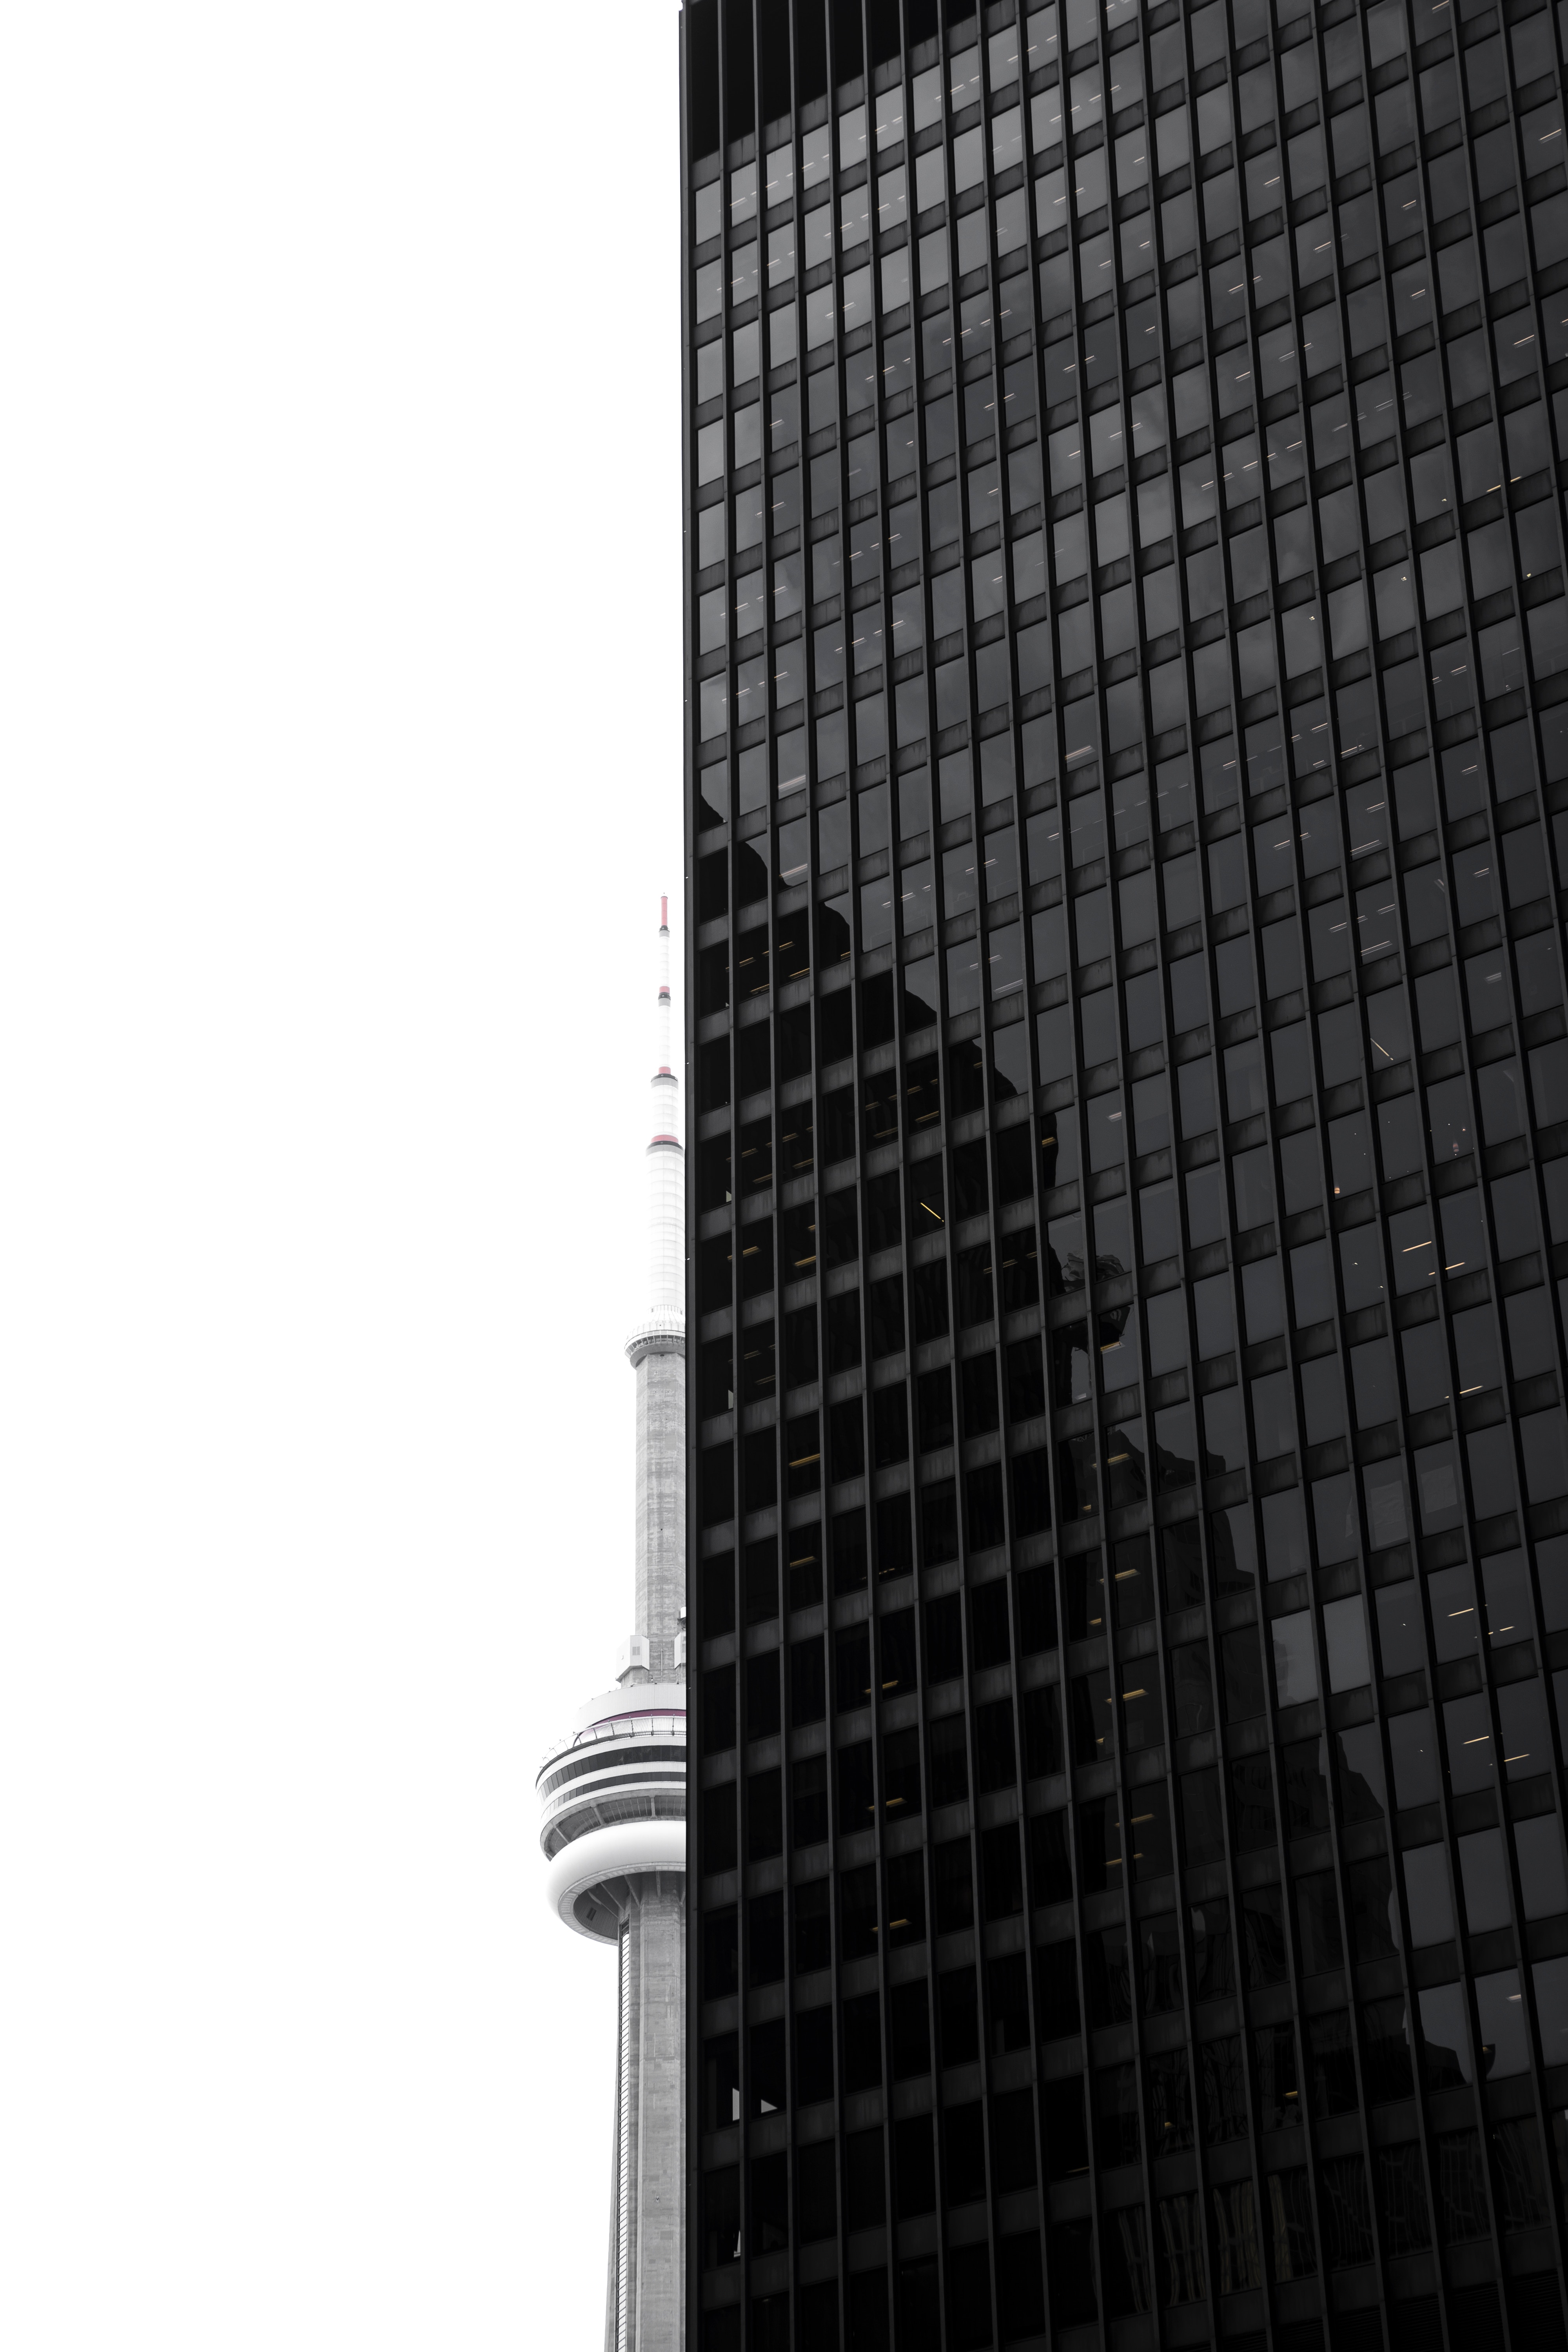 photo of Toronto CN-Tower and building